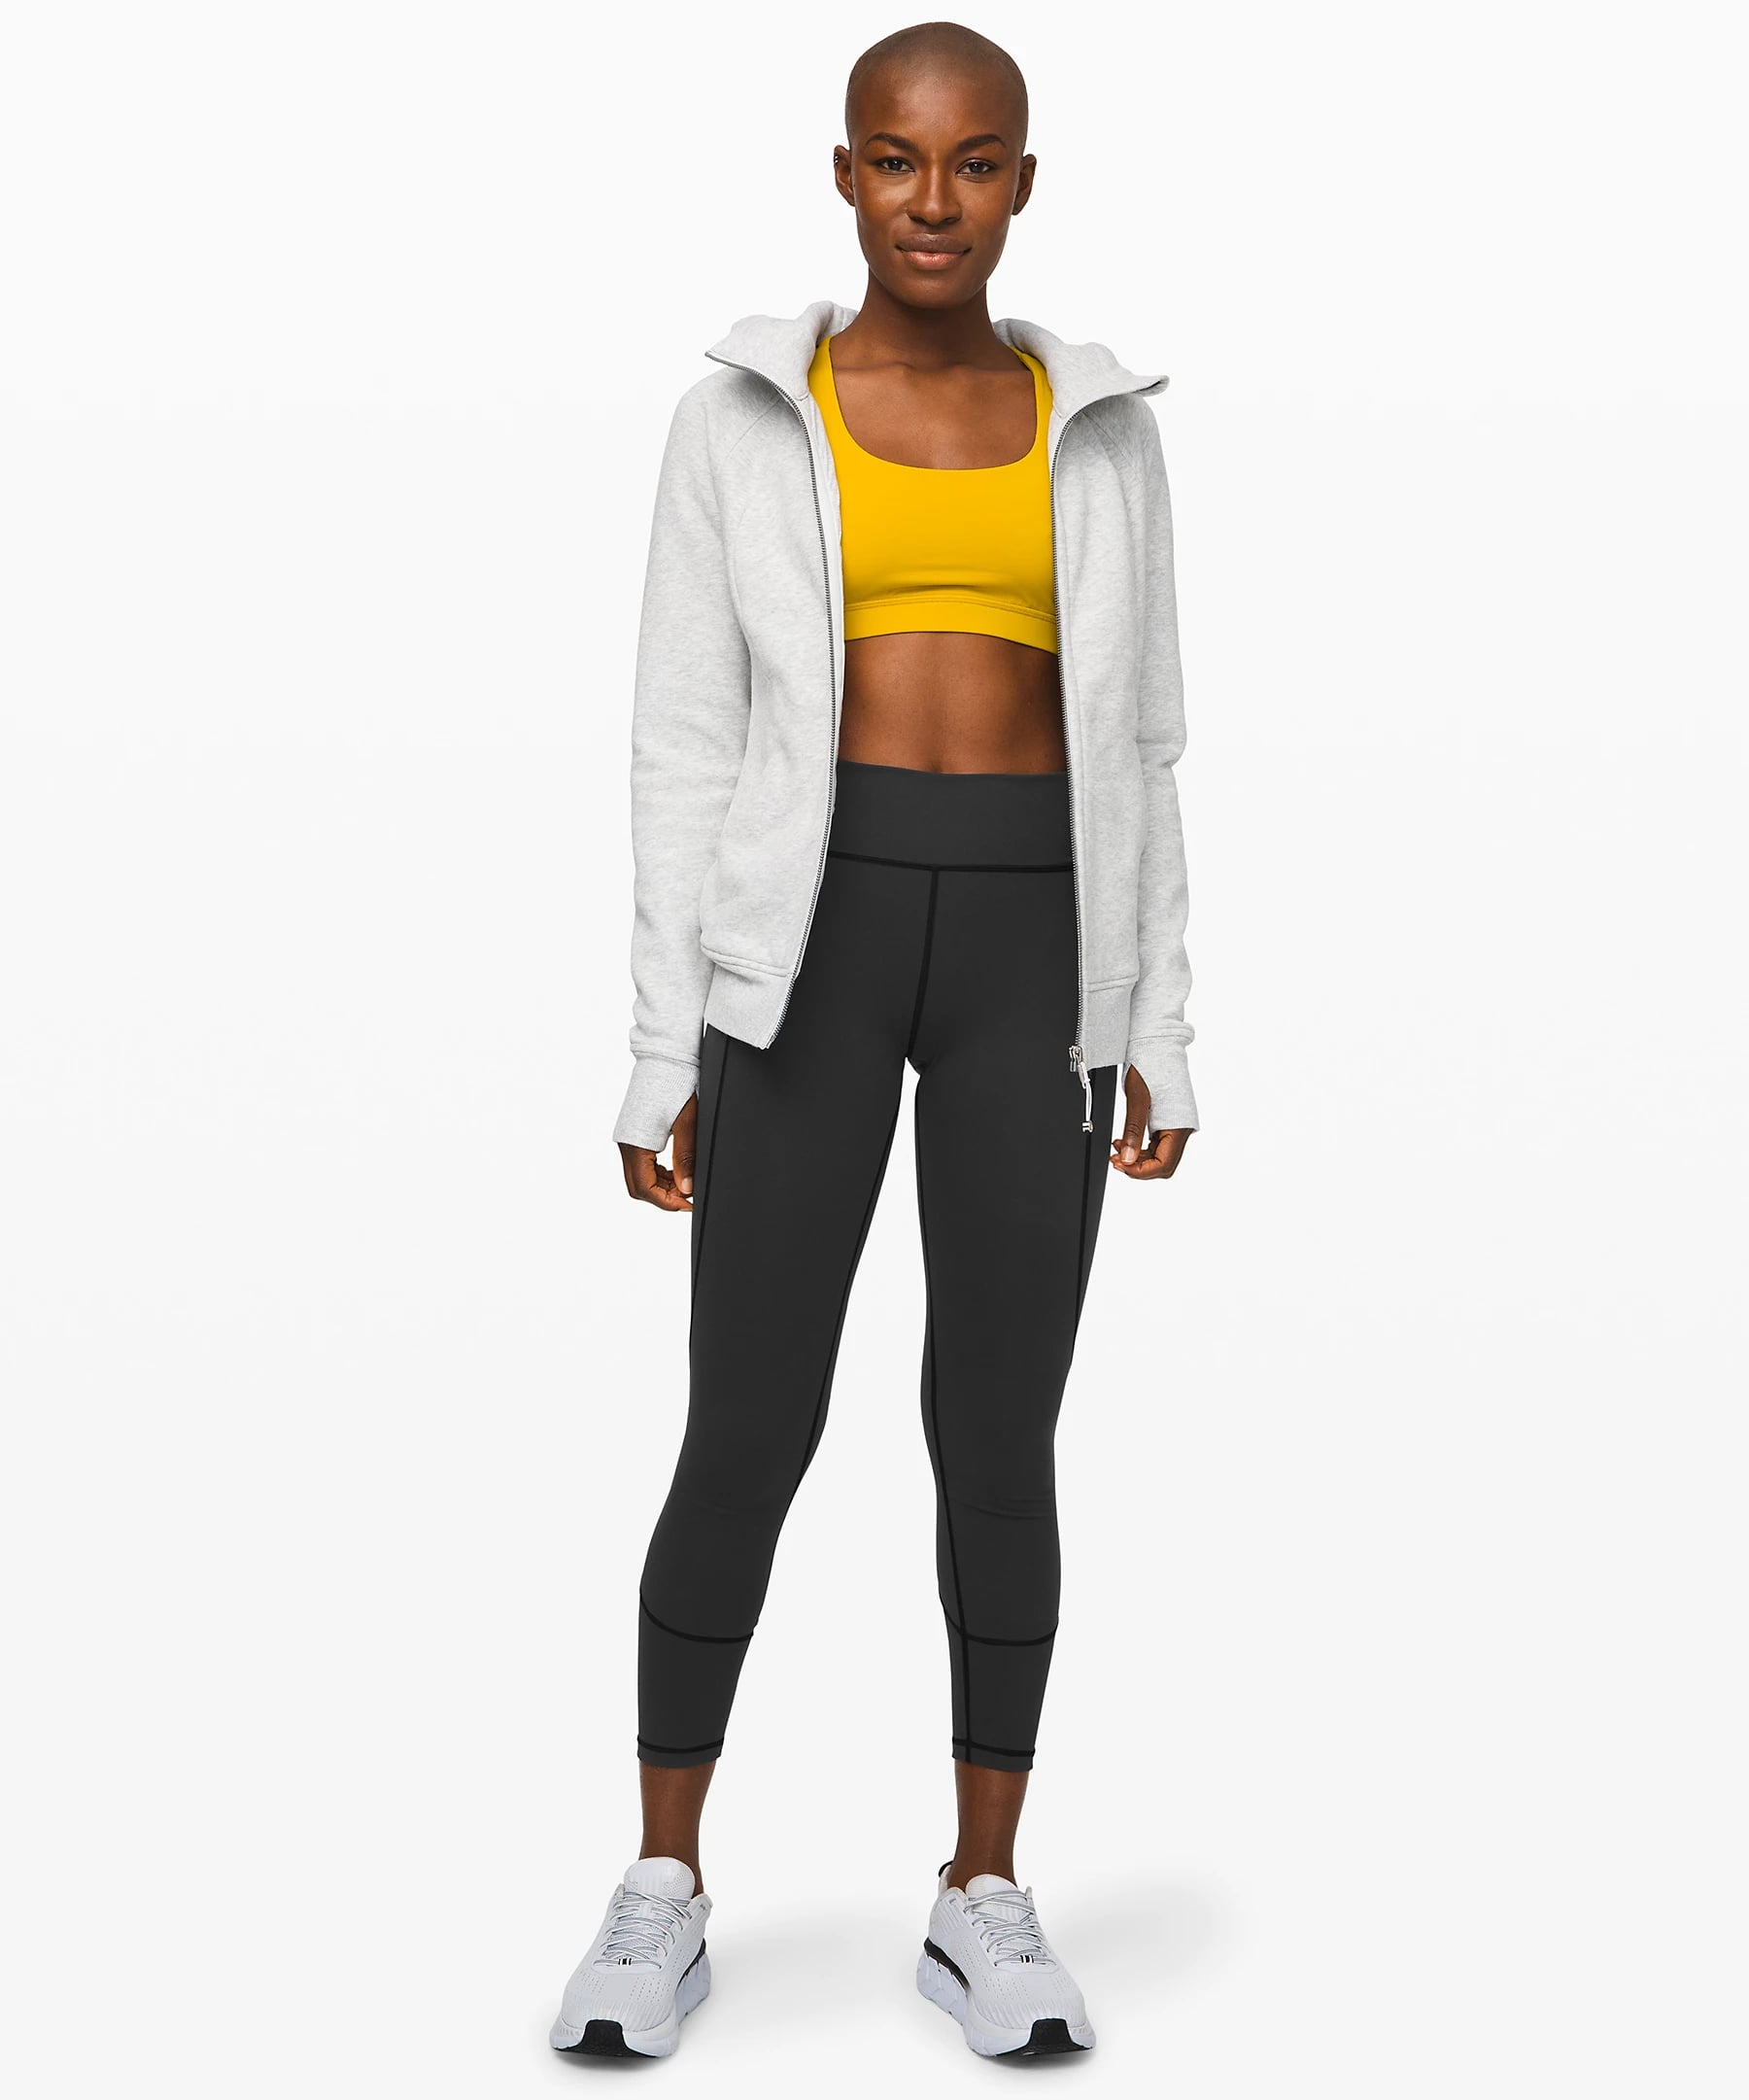 Lululemon Warehouse Sale 2020 Popsugar Fitness